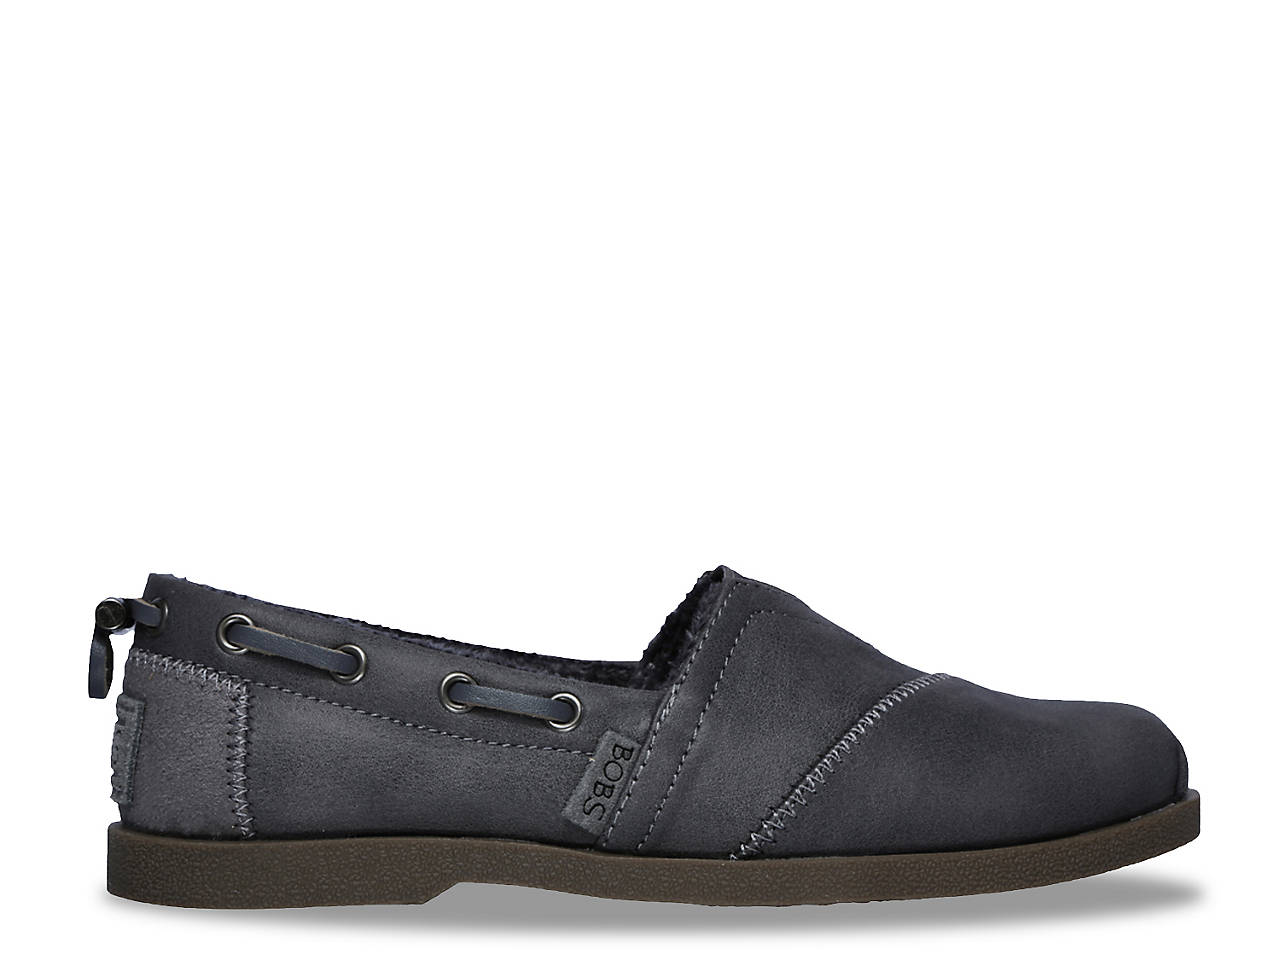 2da488dff1514 Skechers BOBS Chill Luxe Buttoned Up Slip-On Women's Shoes | DSW